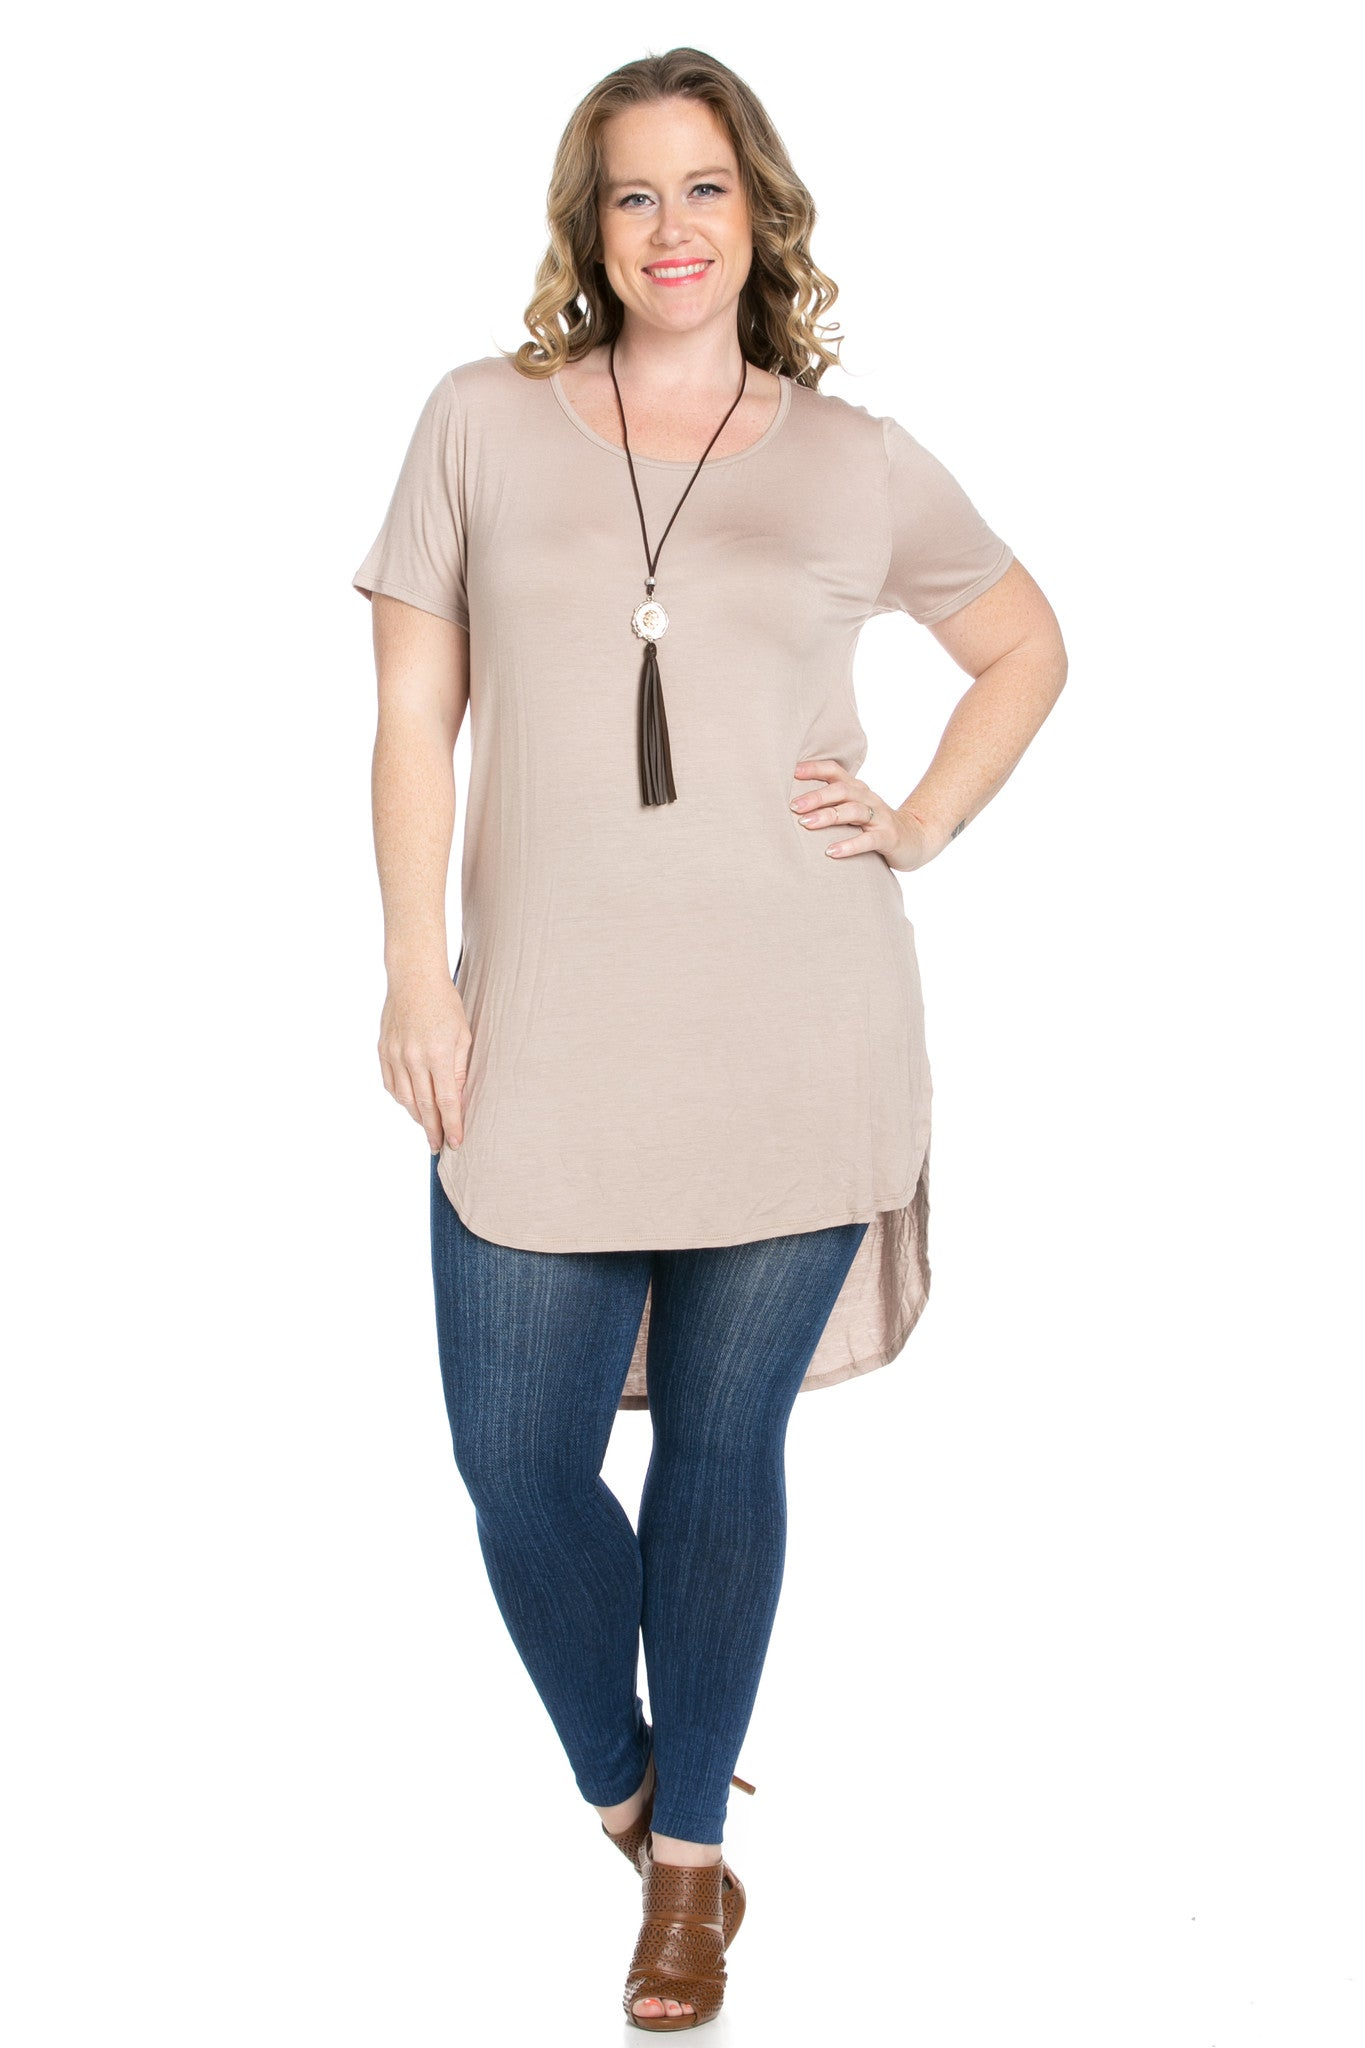 Mocha Plus Size High-low Scoop Neck Shirt - Blouses - My Yuccie - 7